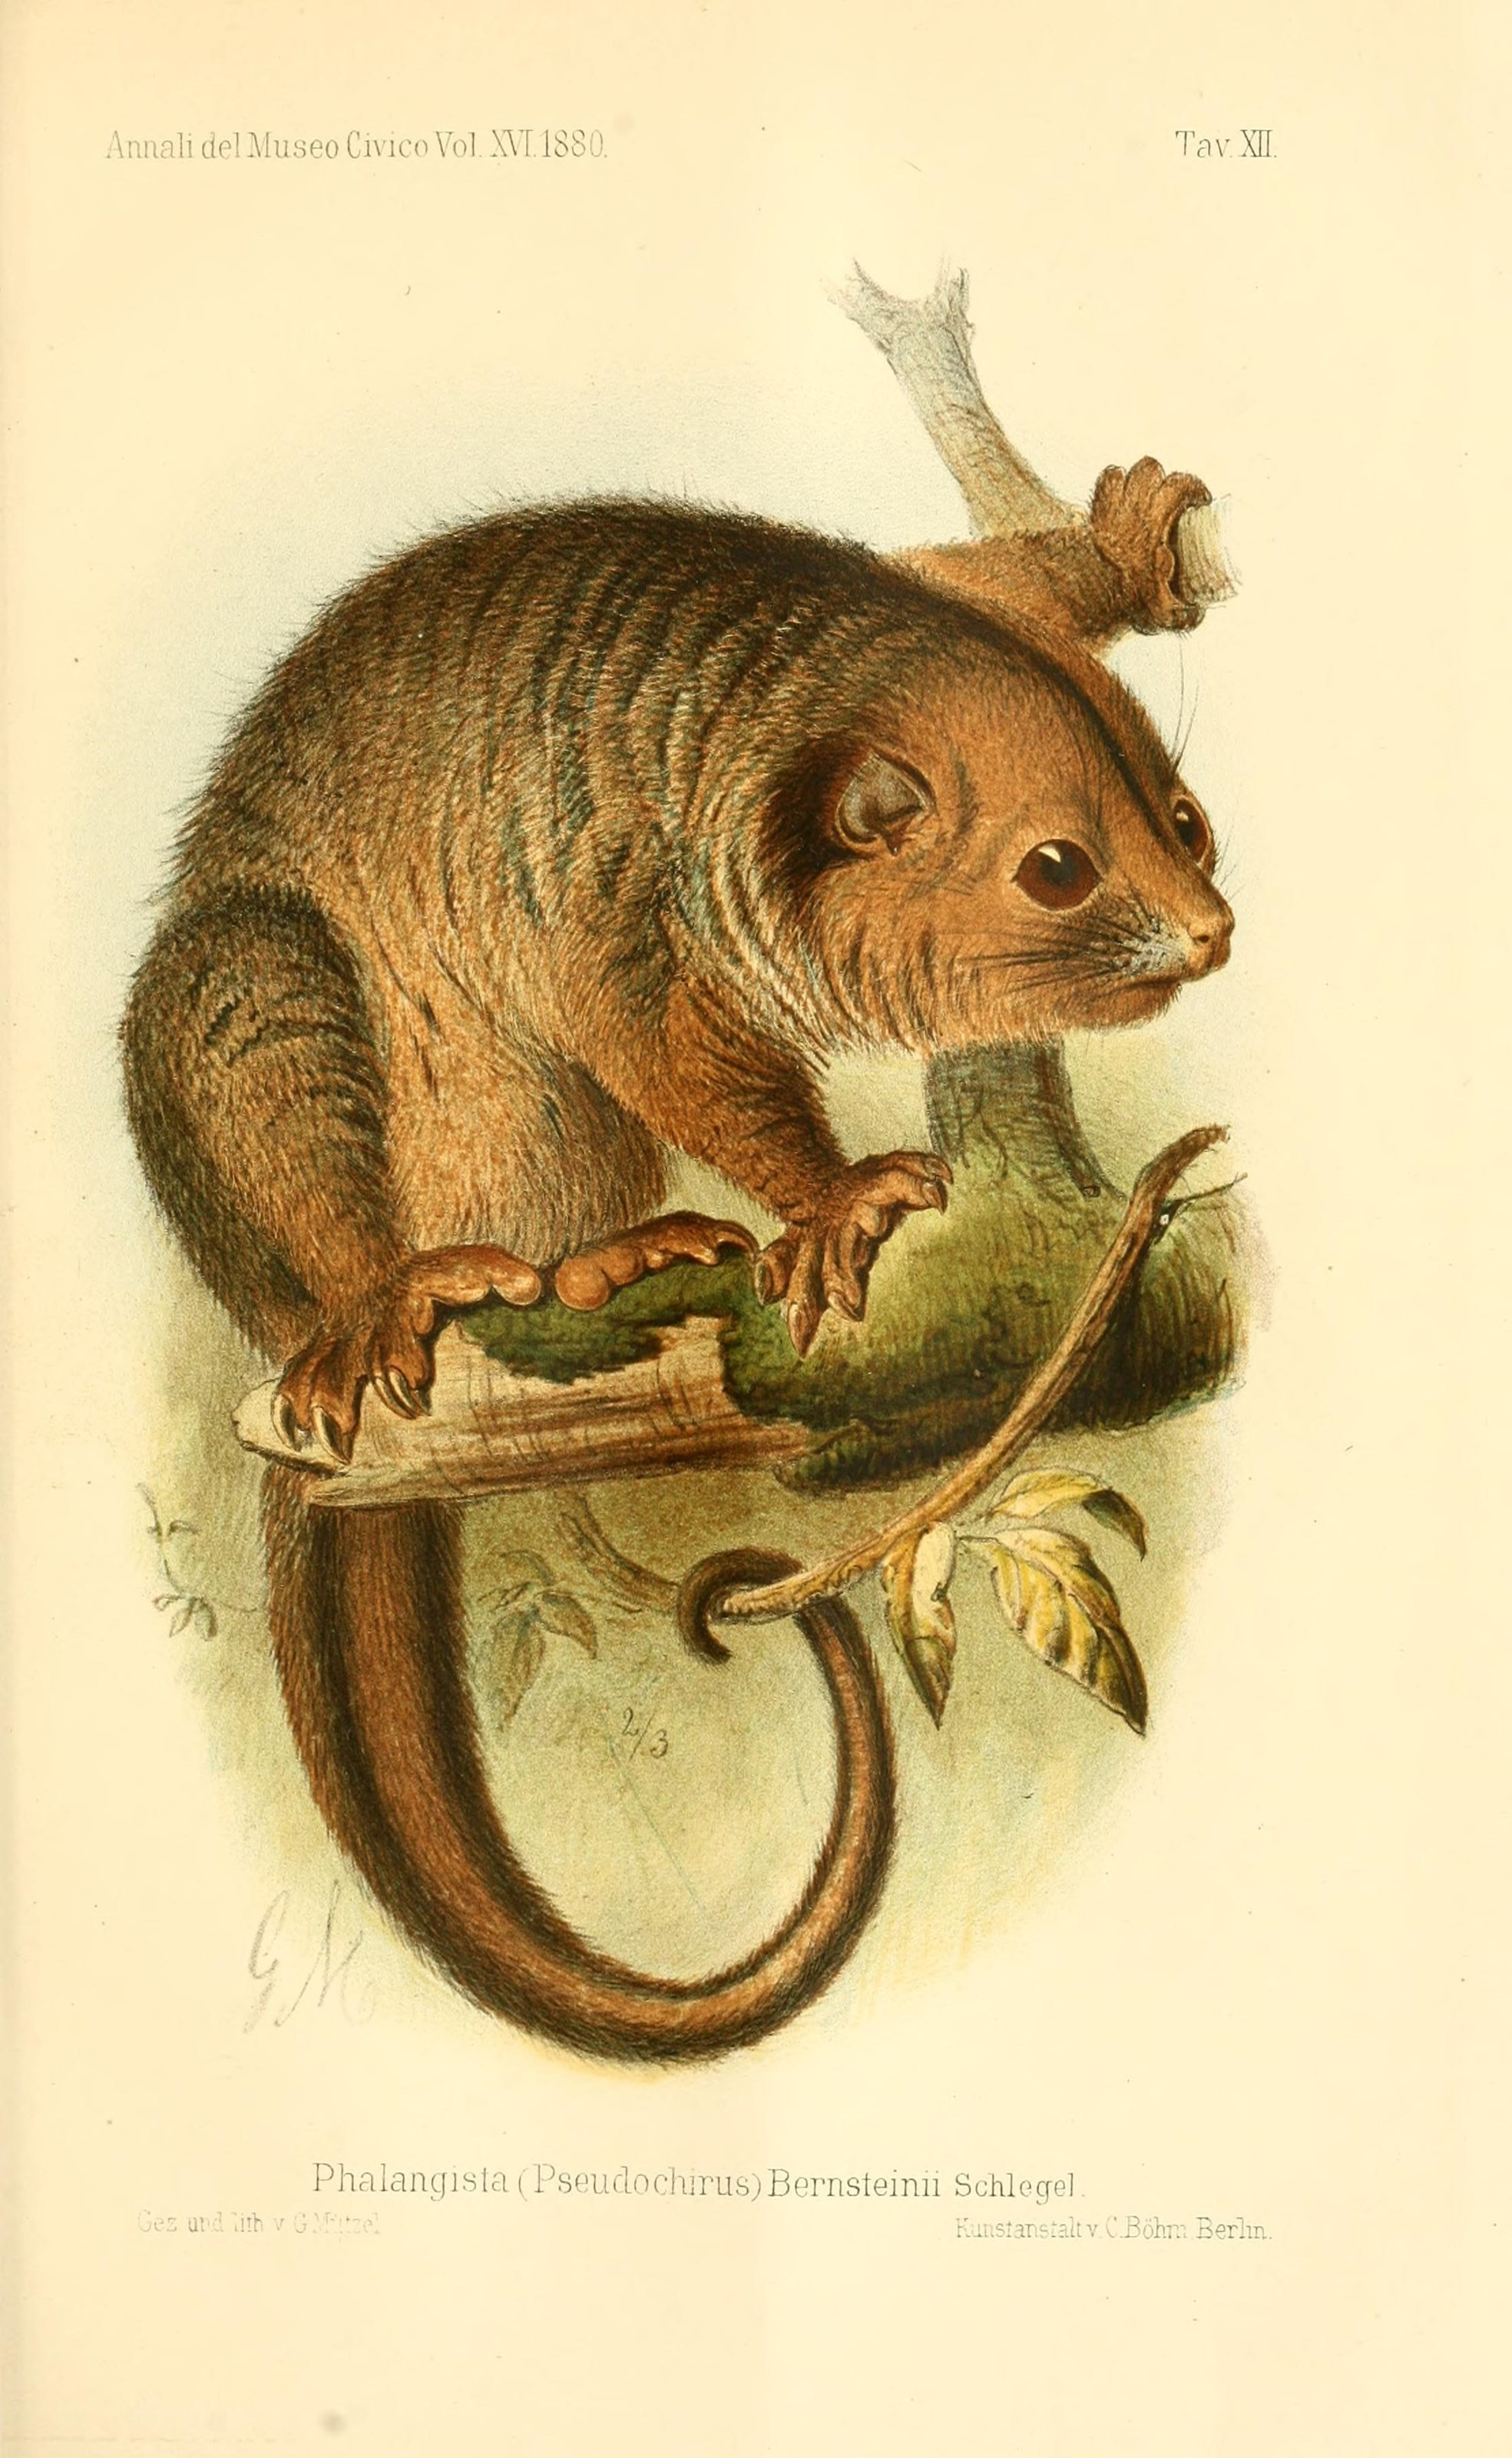 Image of green ringtail